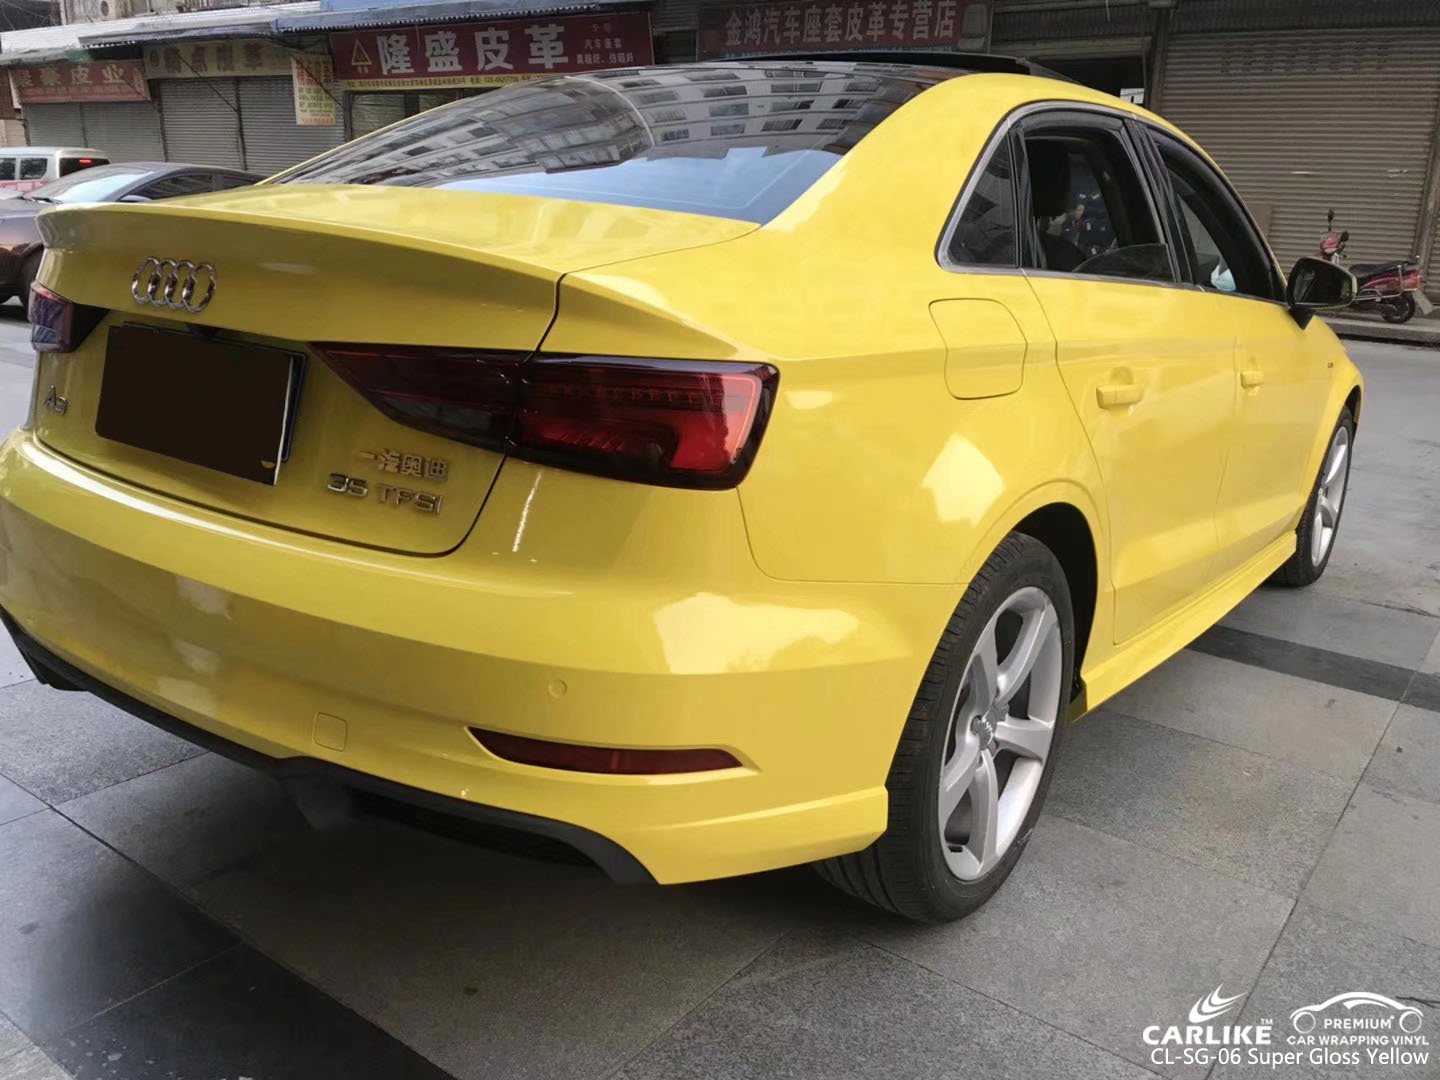 CARLIKE CL-SG-06 SUPER GLOSS YELLOW CAR FOR AUDI